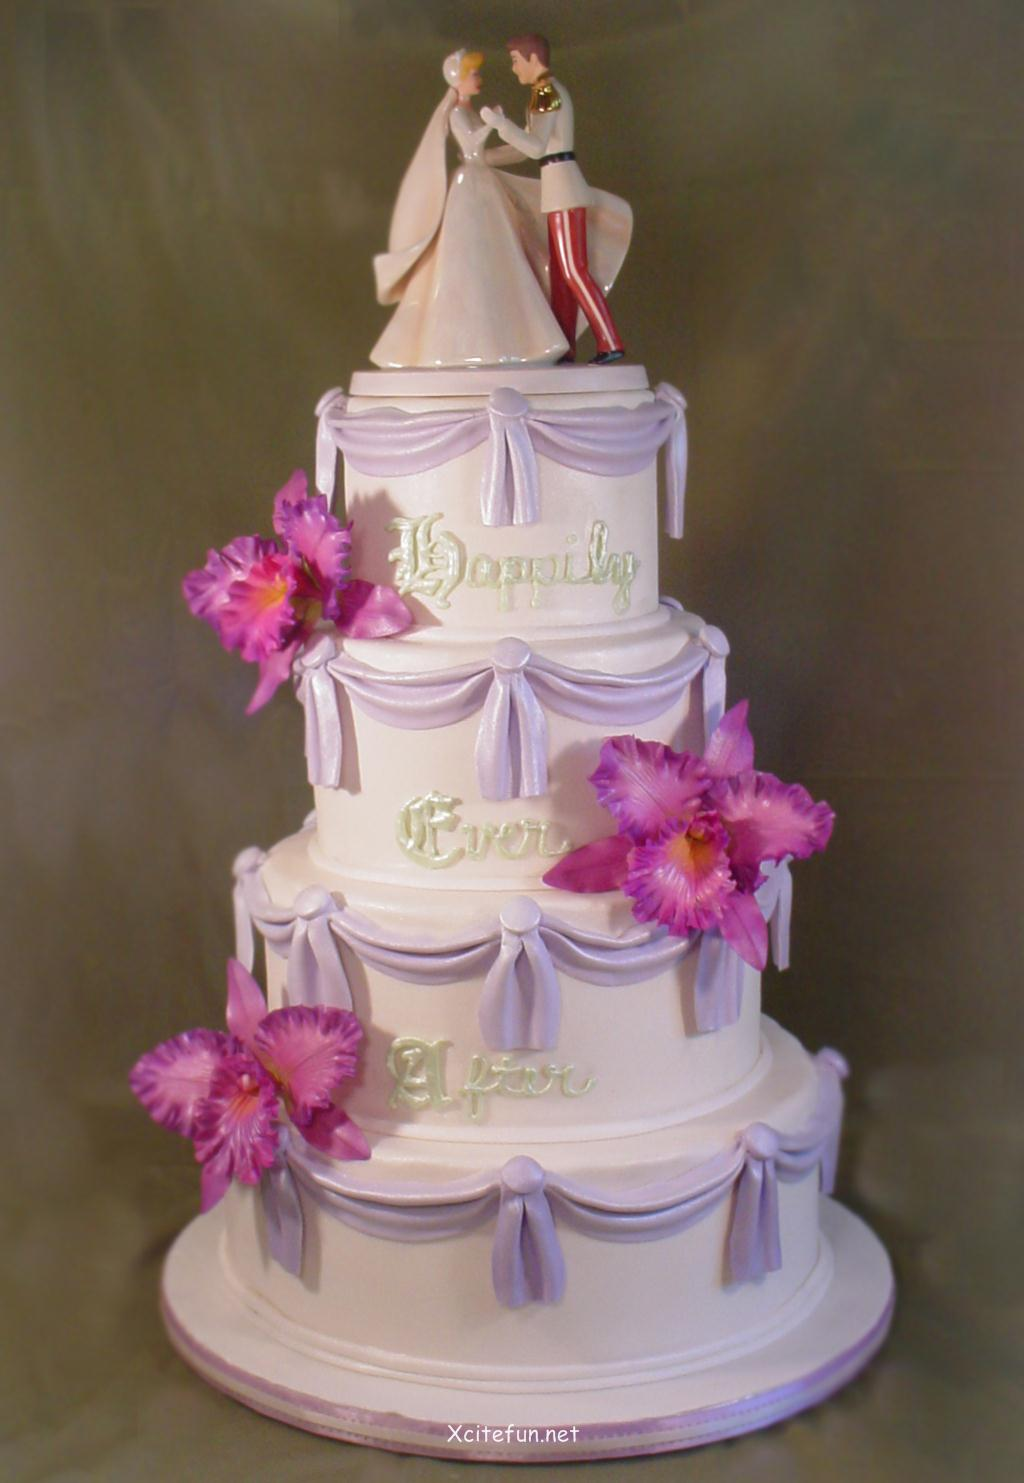 Wedding Cakes Decorating Ideas XciteFun